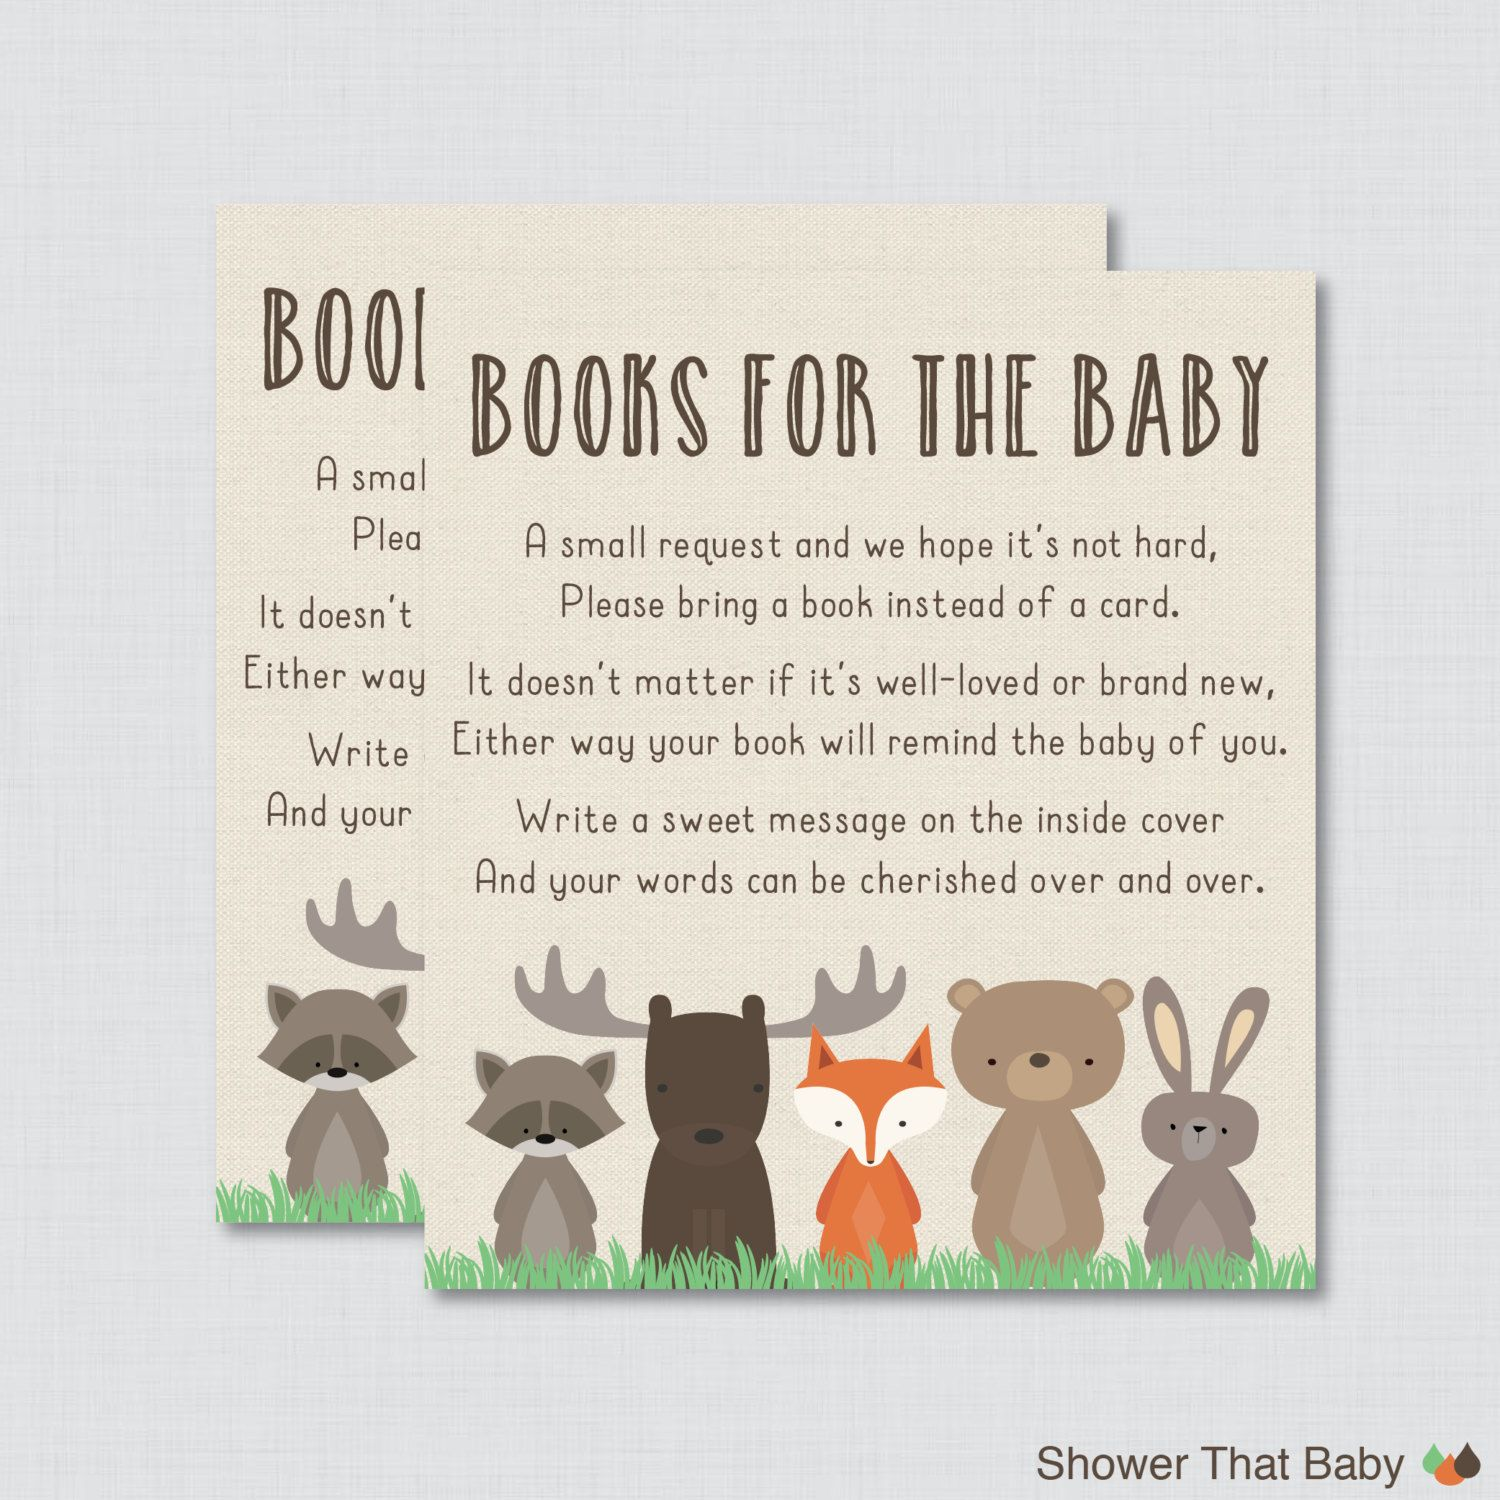 Awesome In Lieu Of A Card Bring A Book Baby Shower Part - 9: Printable Woodland Baby Shower Bring A Book Instead Of A Card Invitation  Inserts Help Build The New Babys Library By Requesting That The Shower